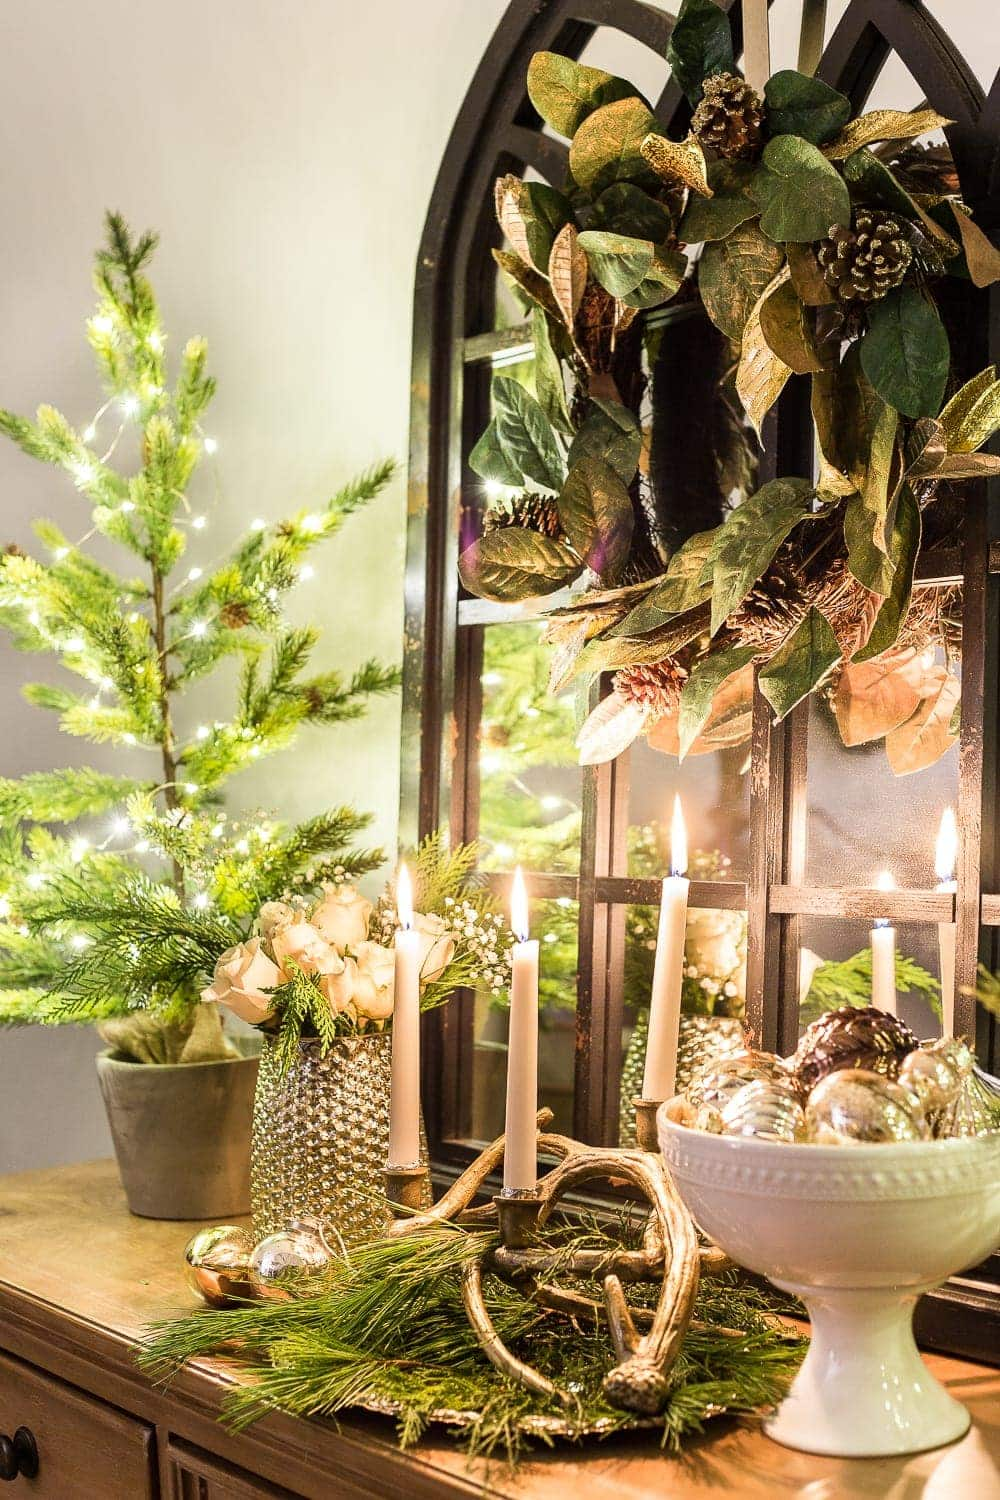 Christmas Night Candlelight Tour | blesserhouse.com - A Christmas night time candlelight home tour with neutral, classic decorating ideas. #christmasdecor #christmascandlelight #christmashometour #candlelighttour